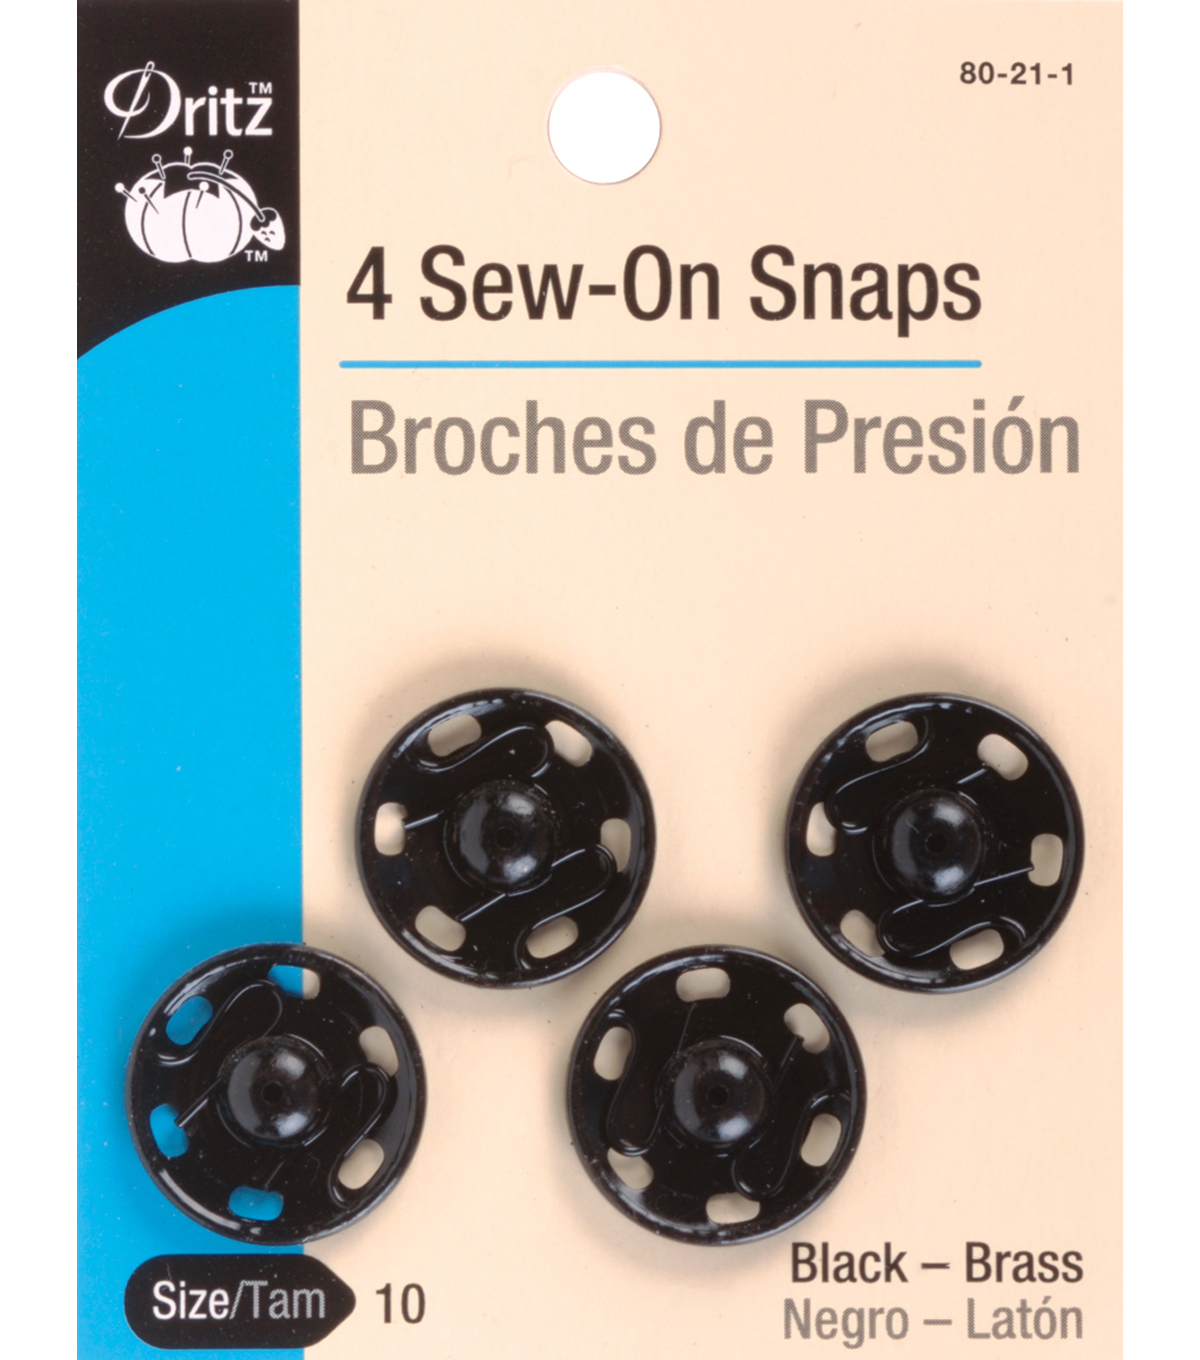 Dritz Sew-On Snaps 4pcs Size 10